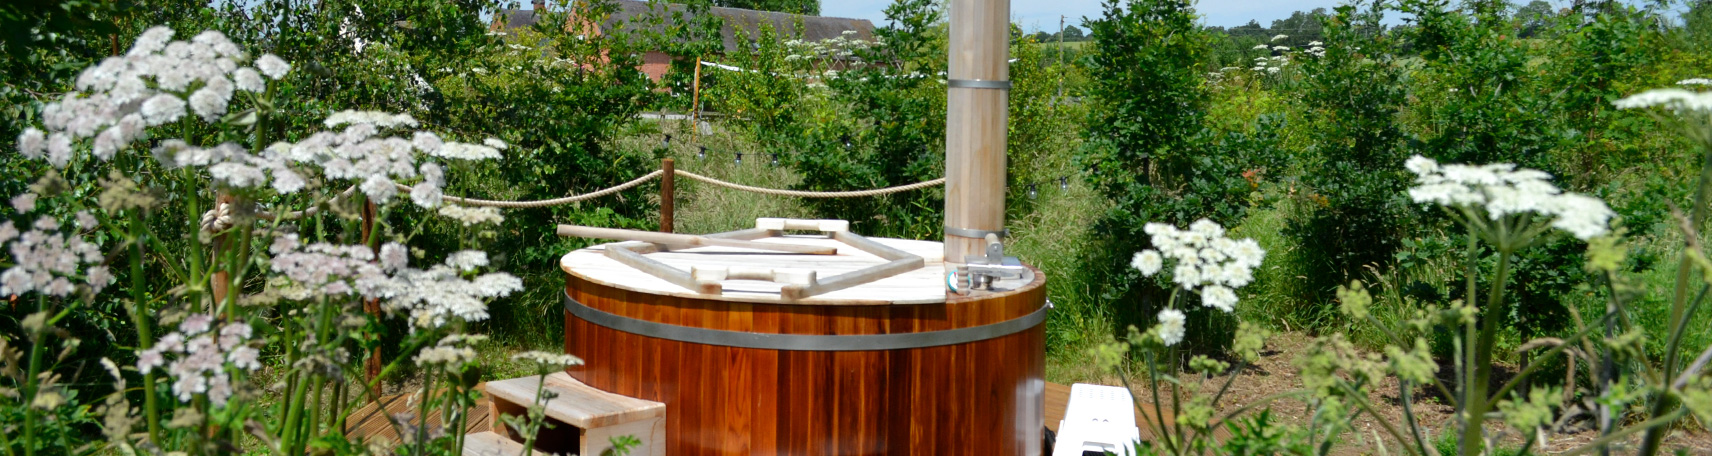 Hot Tub surrounded by flowers for a Hen Camp at The Grange